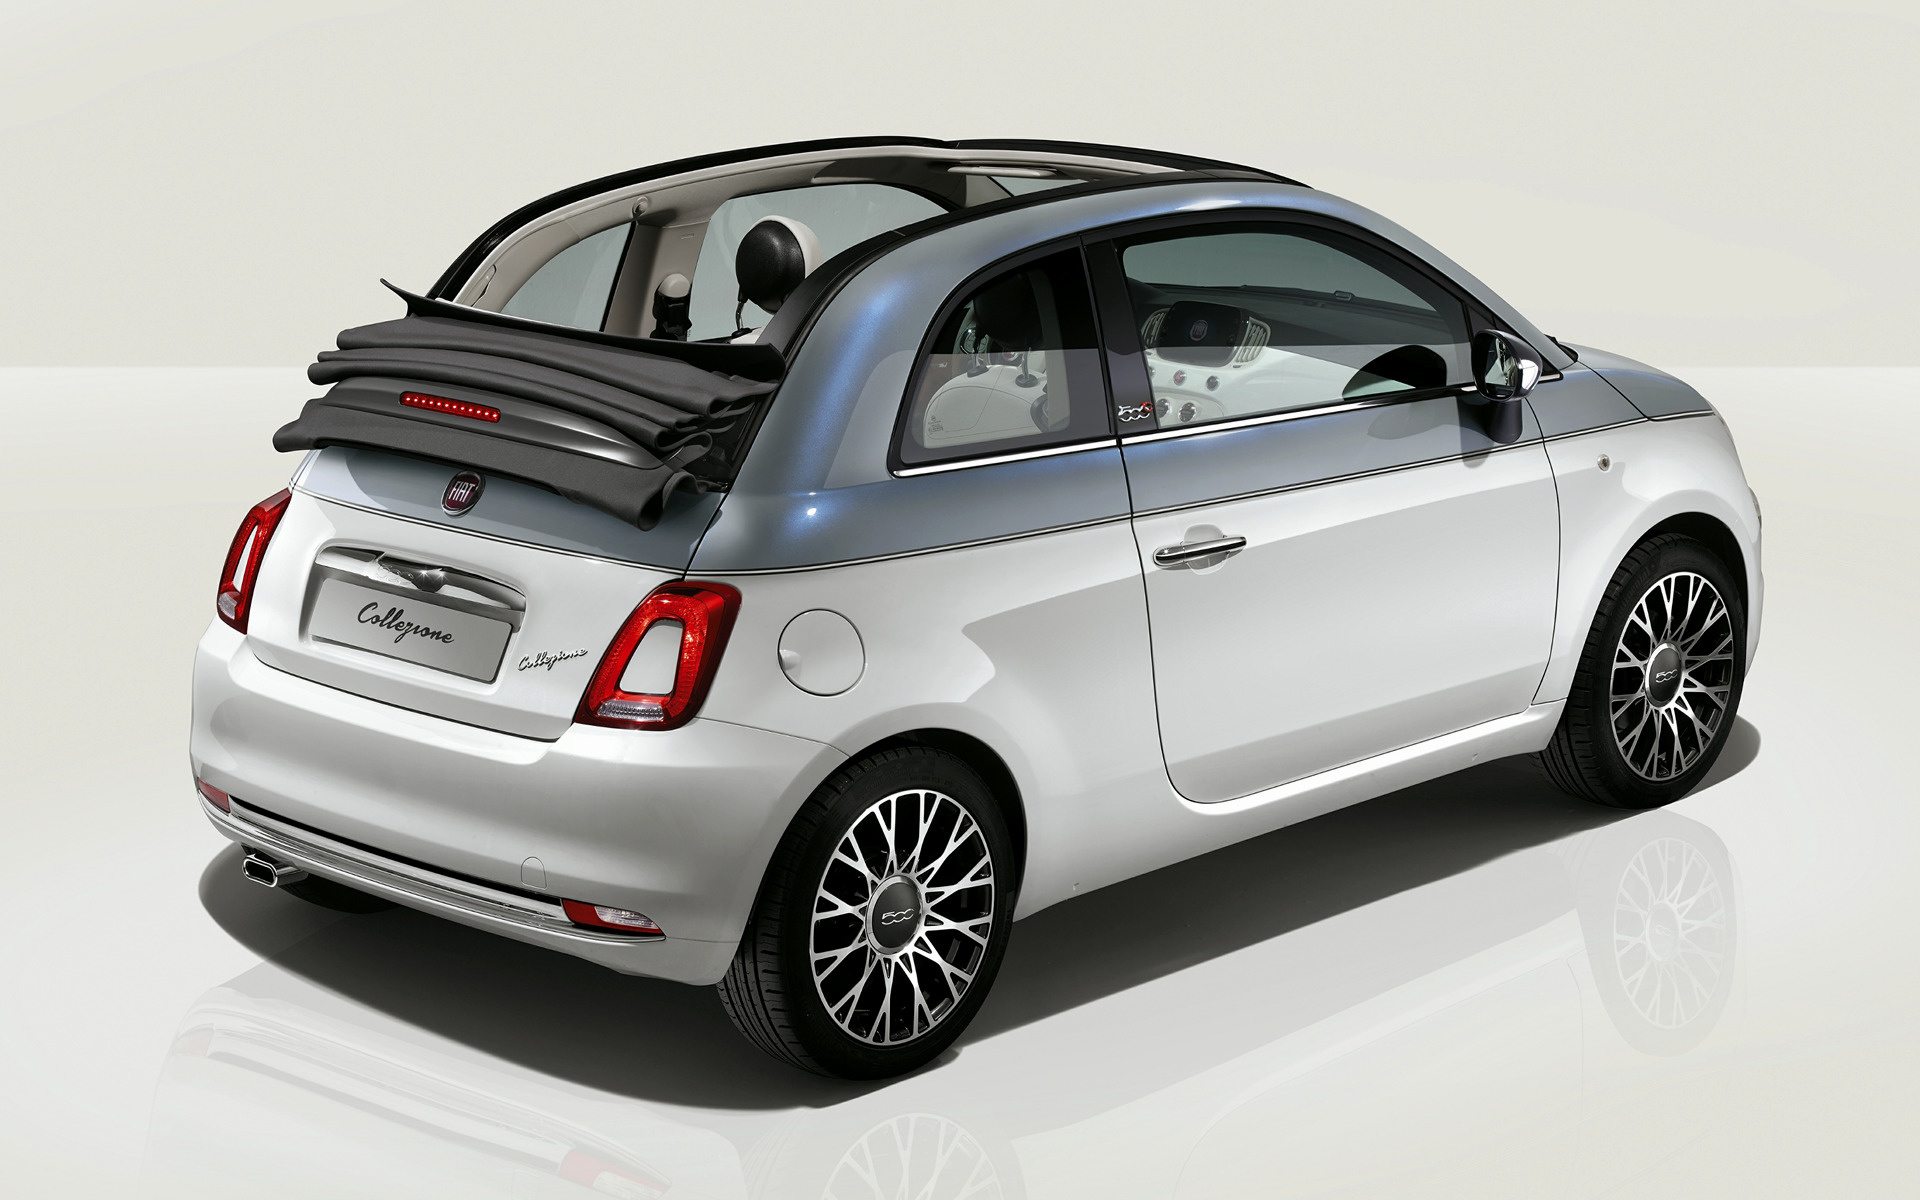 fiat 500c collezione 2018 wallpapers and hd images car. Black Bedroom Furniture Sets. Home Design Ideas